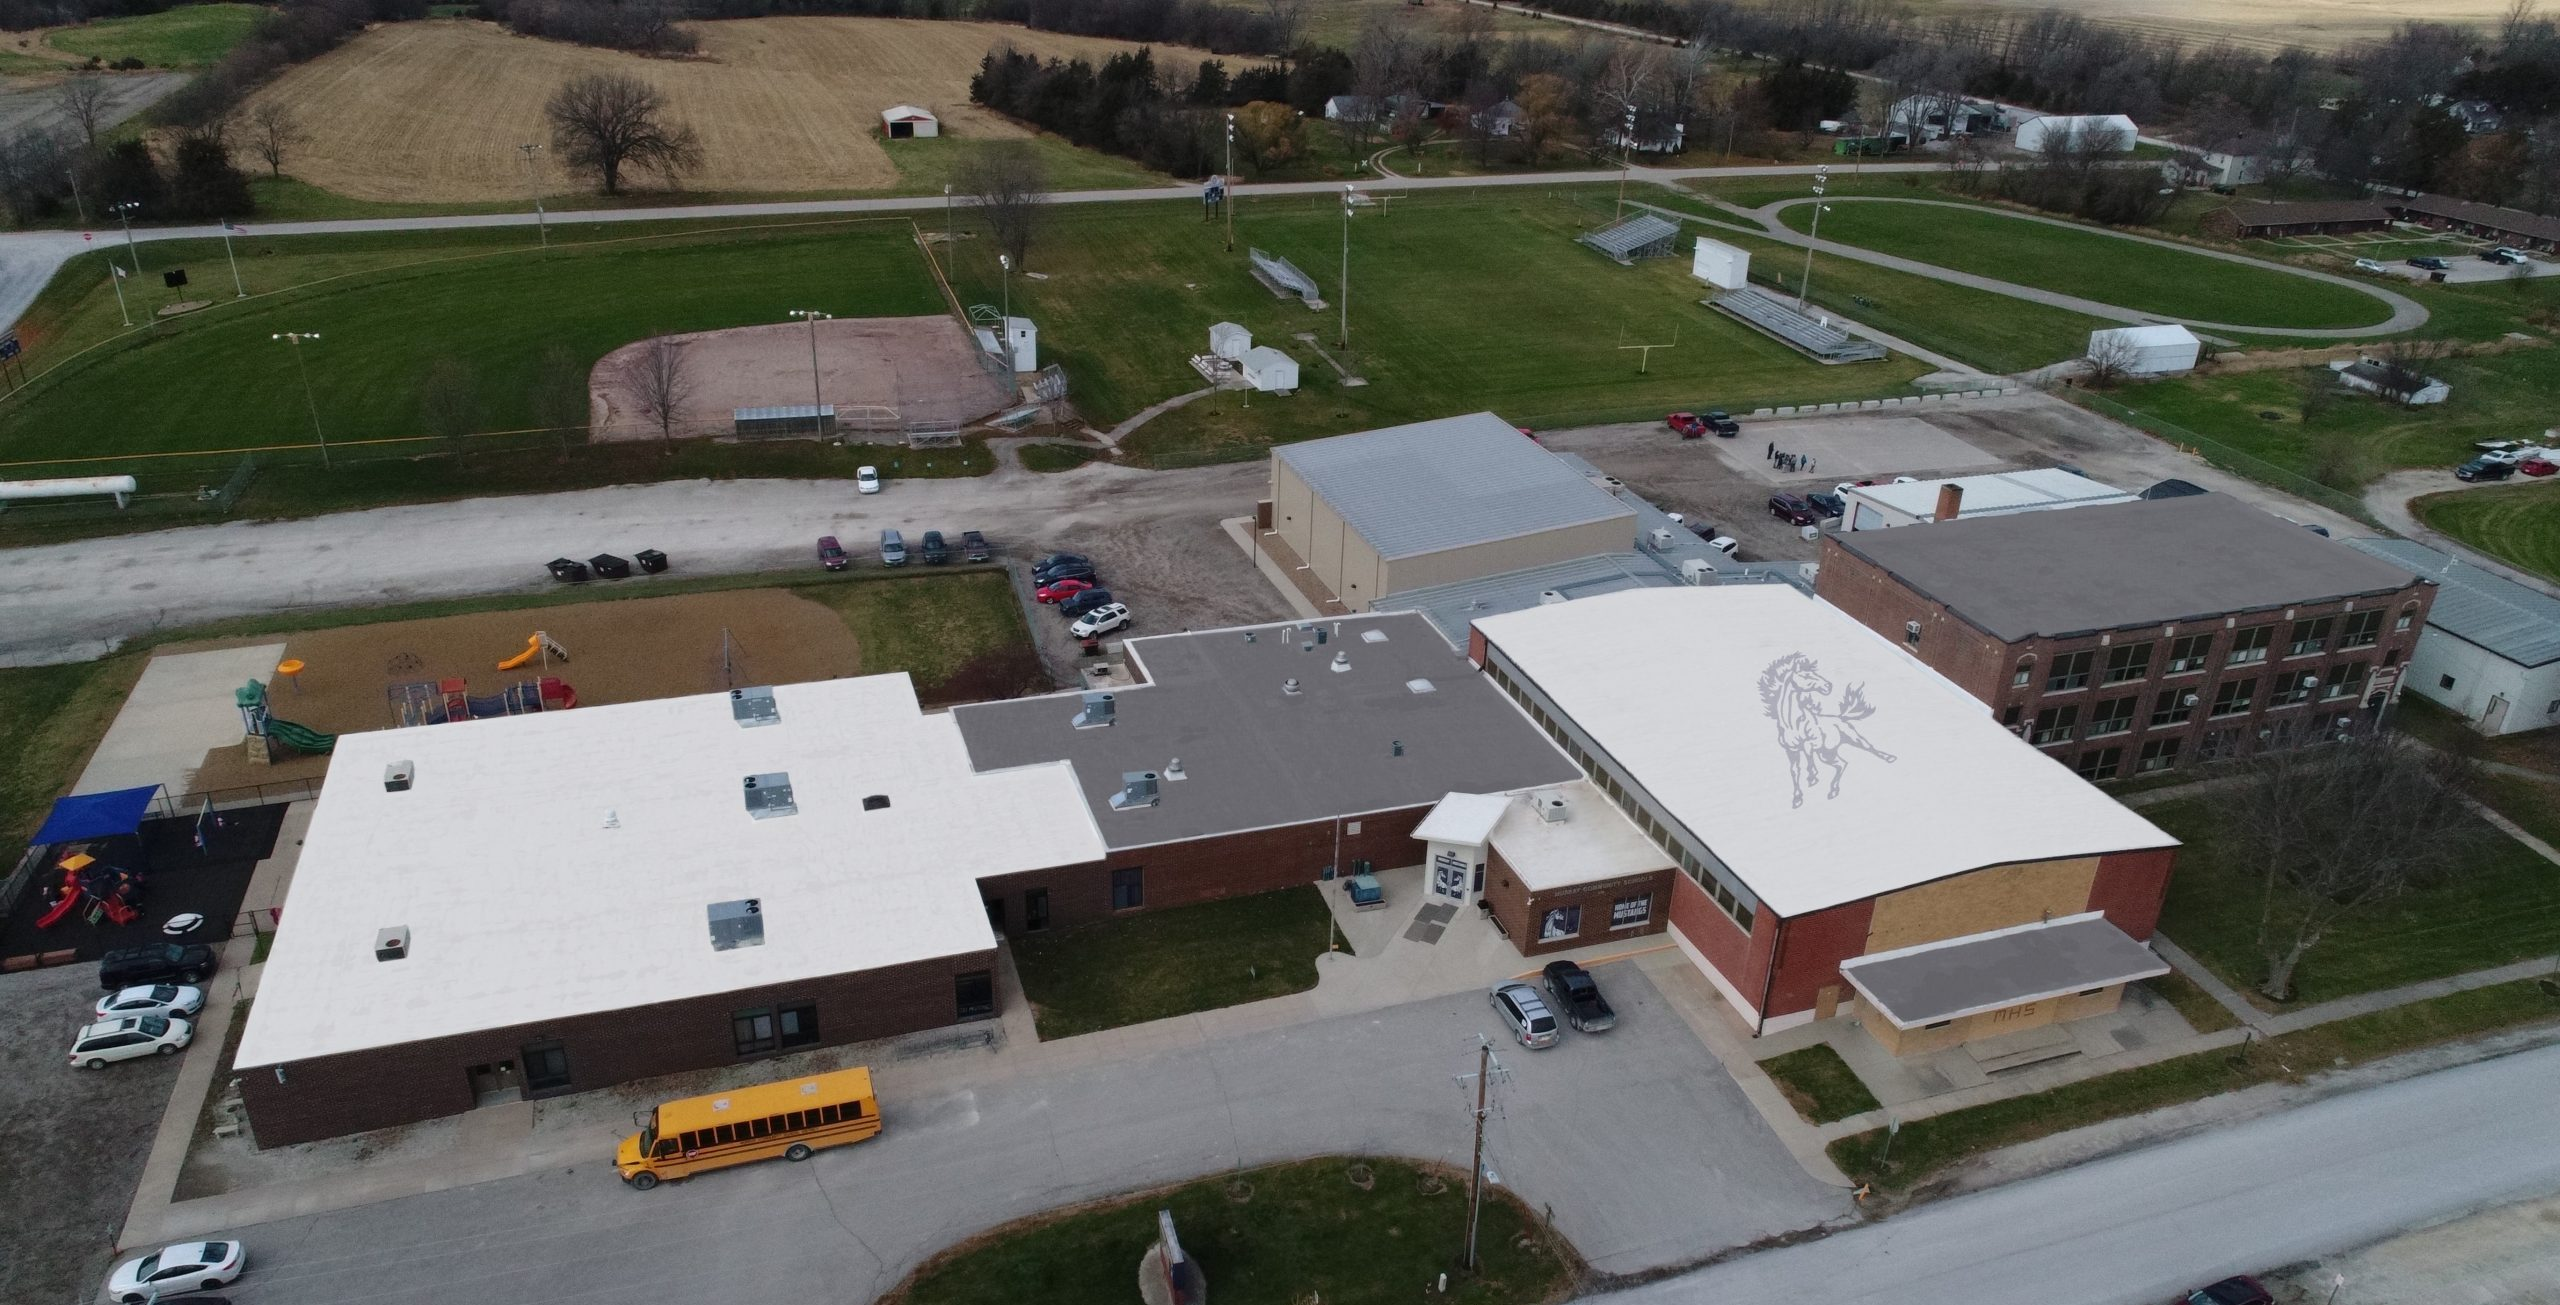 Aerial picture of the school and ball fields